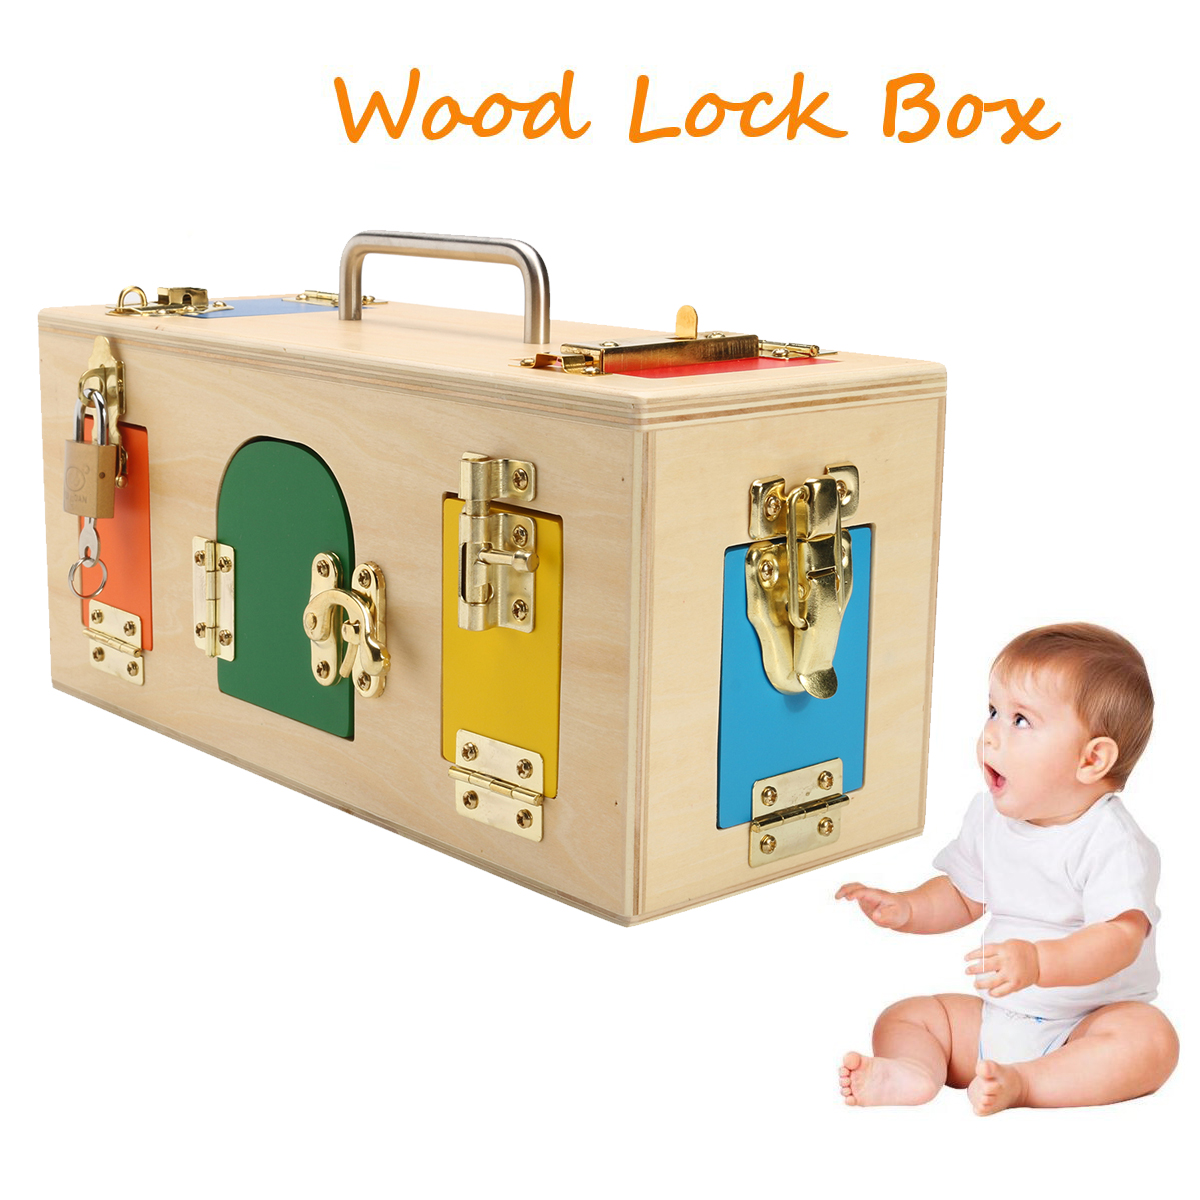 Kids Life Skill Learning Wooden Montessori Practical Wood Lock Box Educational Science Toys